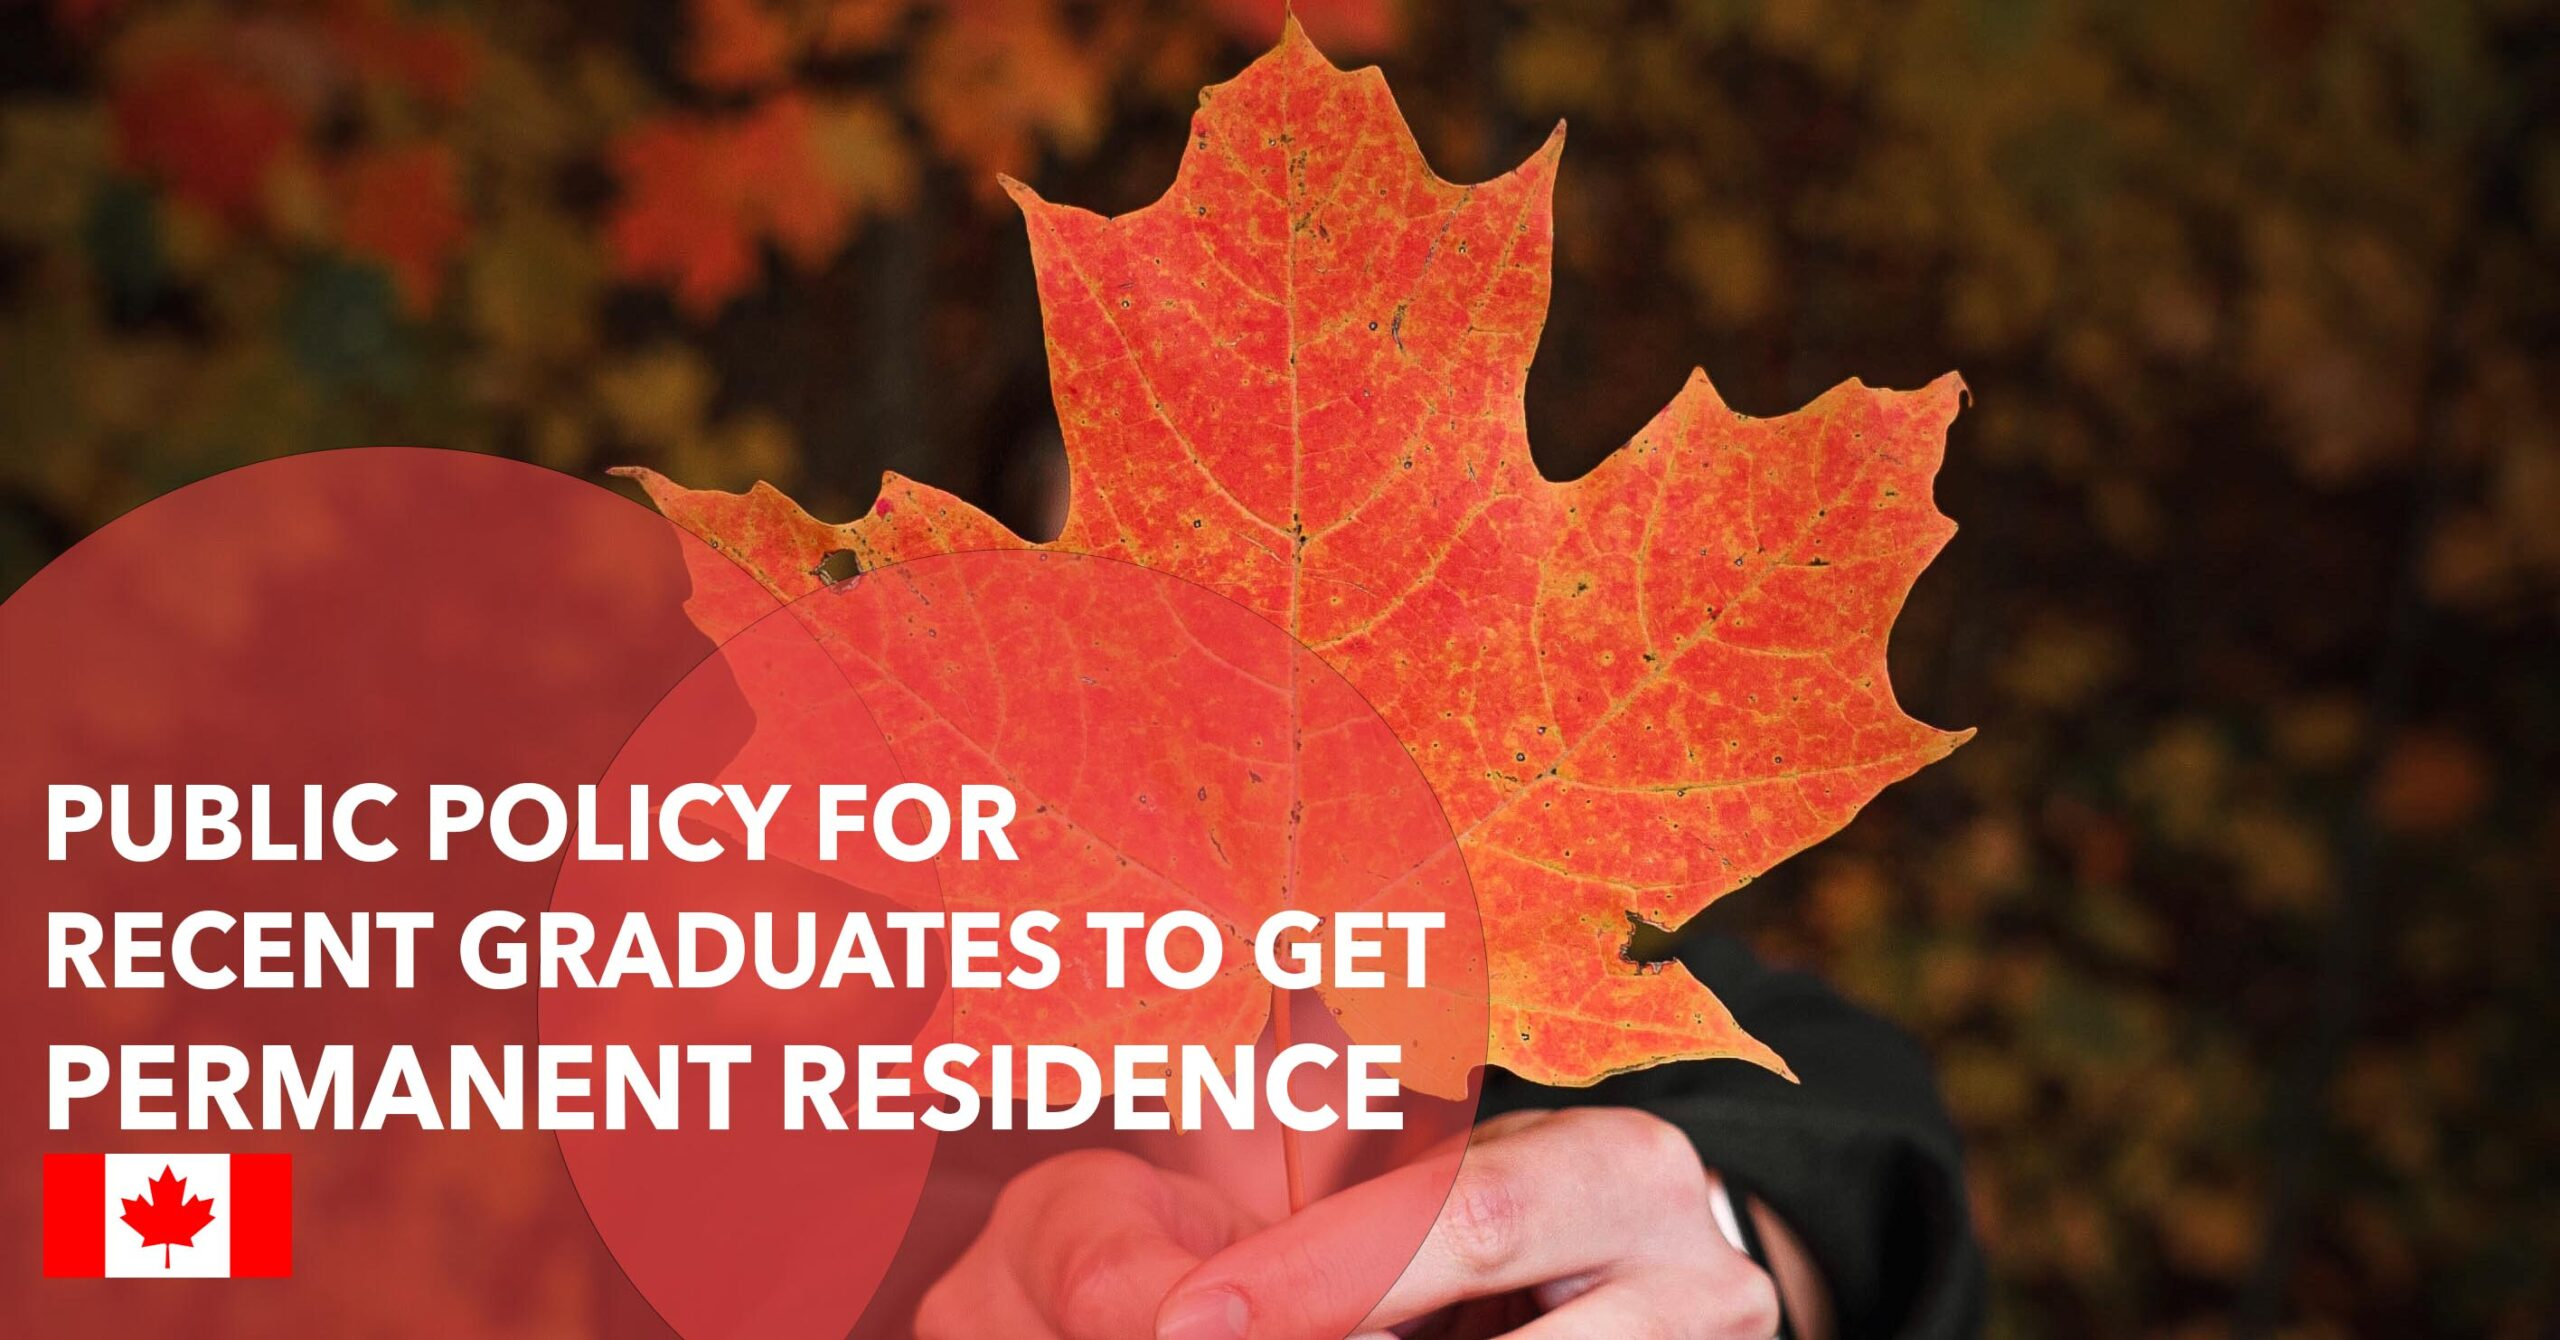 PUBLIC POLICY FOR RECENT GRADUATES TO GET PERMANENT RESIDENCE